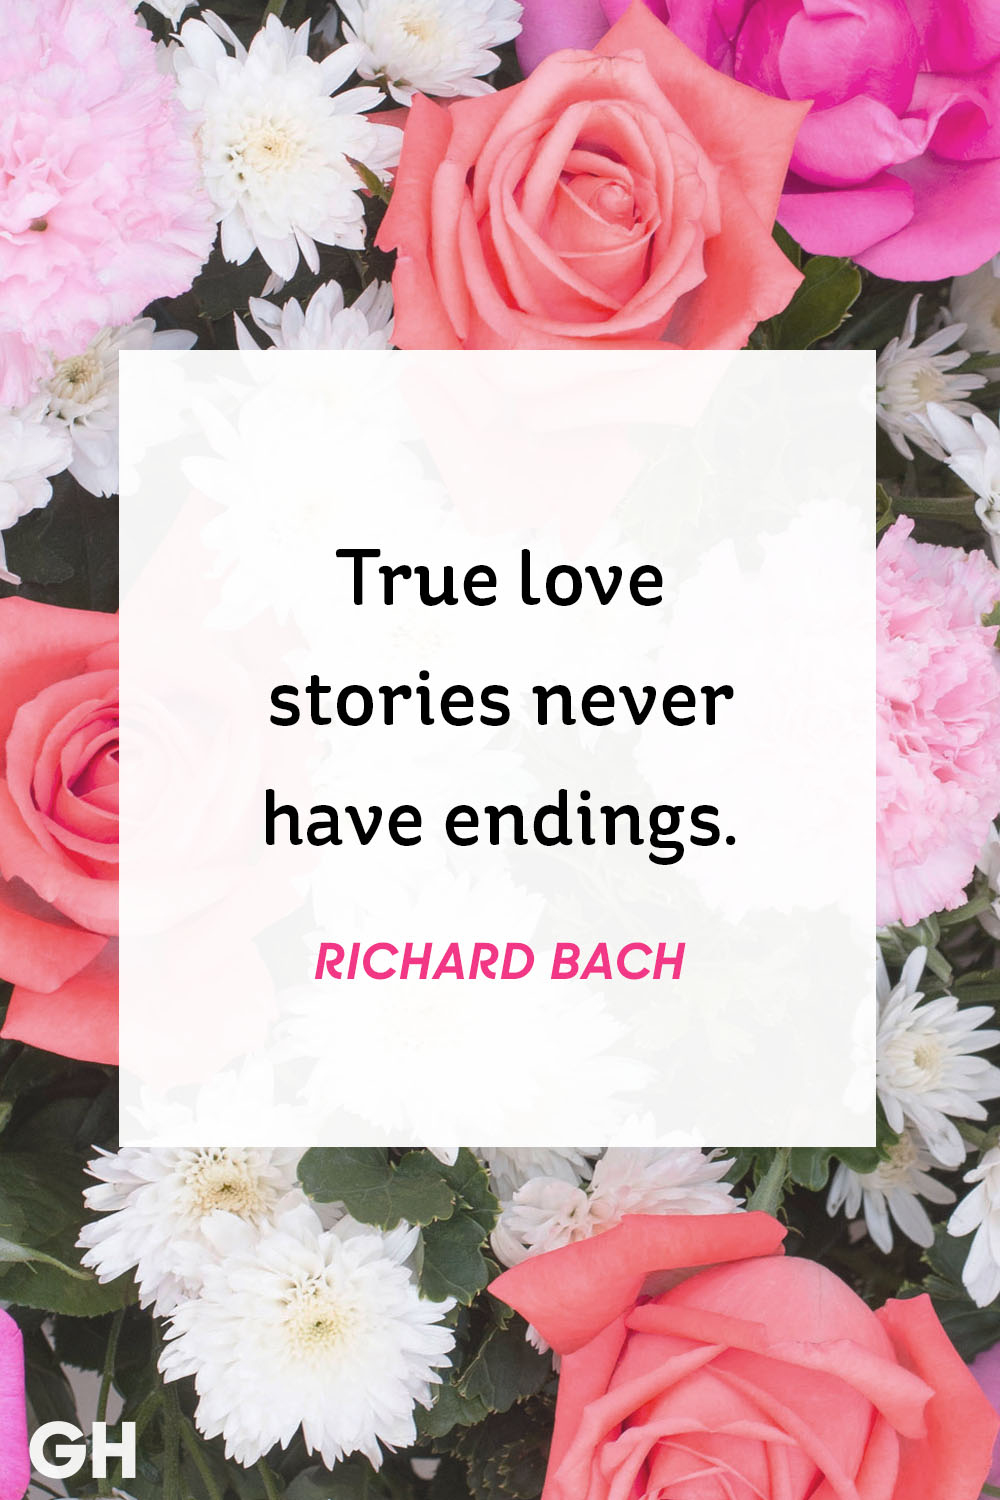 Love Flower Quotes 25 Best Love Quotes Of All Time  Cute Famous Sayings About Love